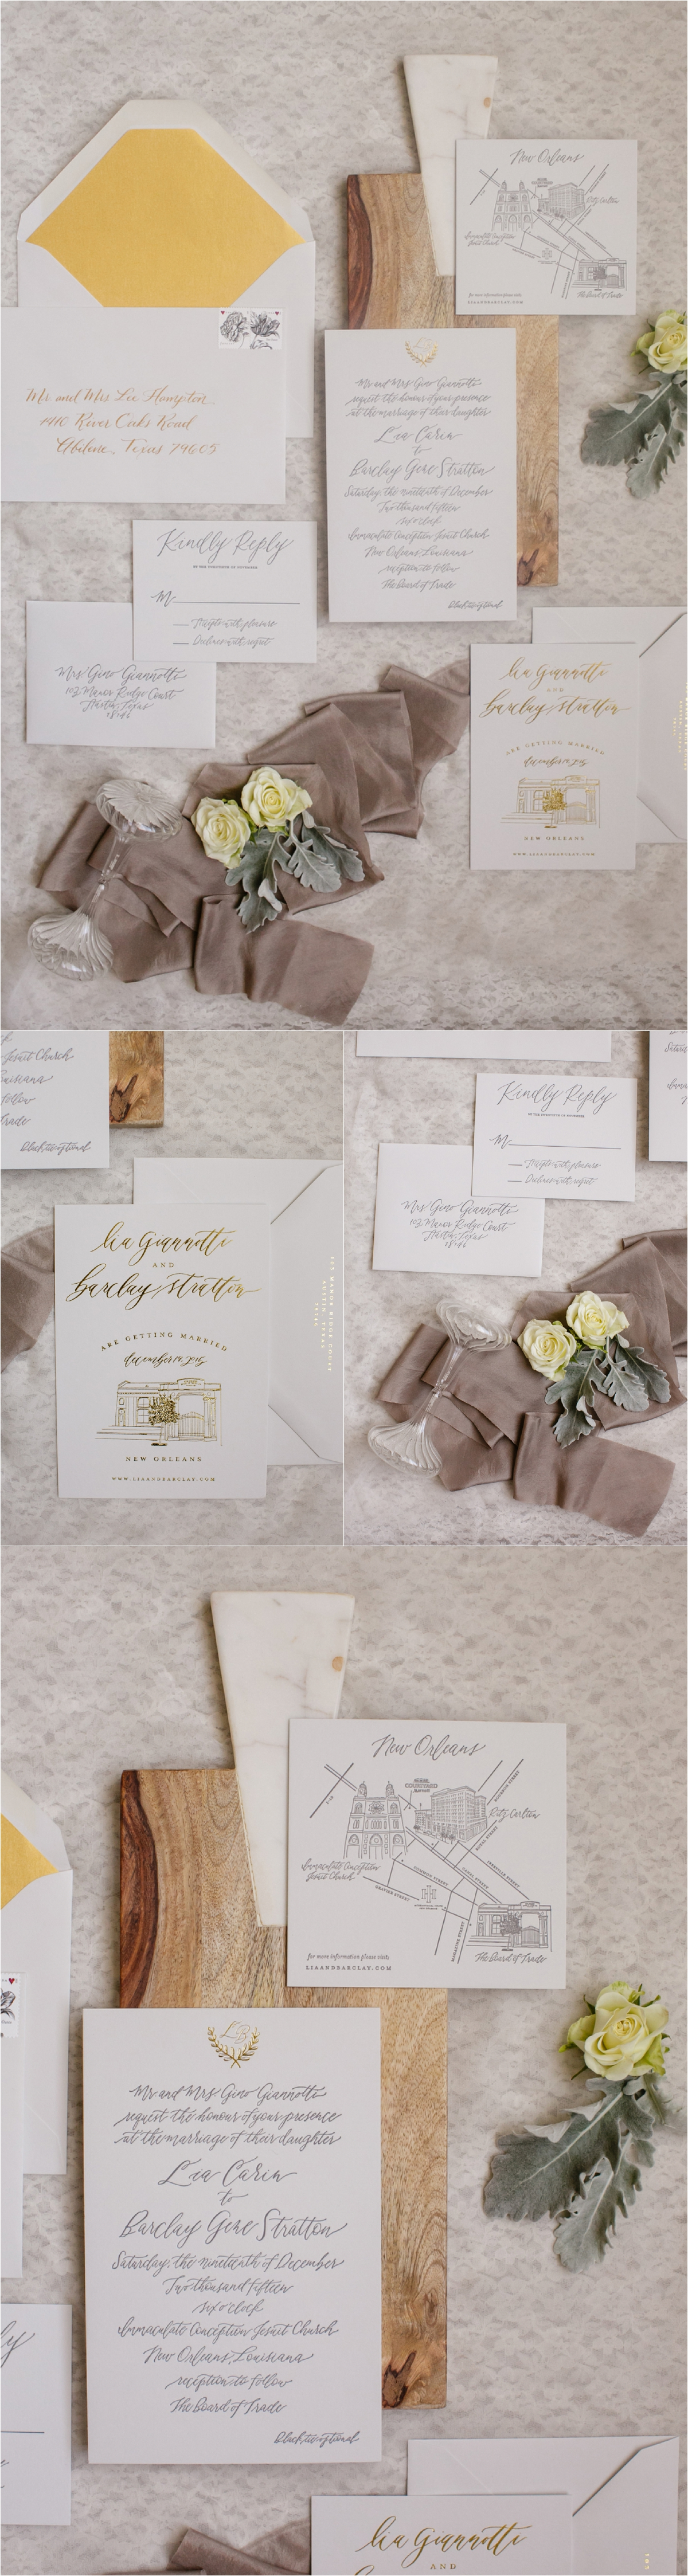 How to transform an open ballroom with stunning decor | Sapphire Events | Greer G Photography | Board of Trade | White and Gold Wedding | Winter Wedding Inspiration | White and Green wedding | Hand lettering | Calligraphy | letterpress